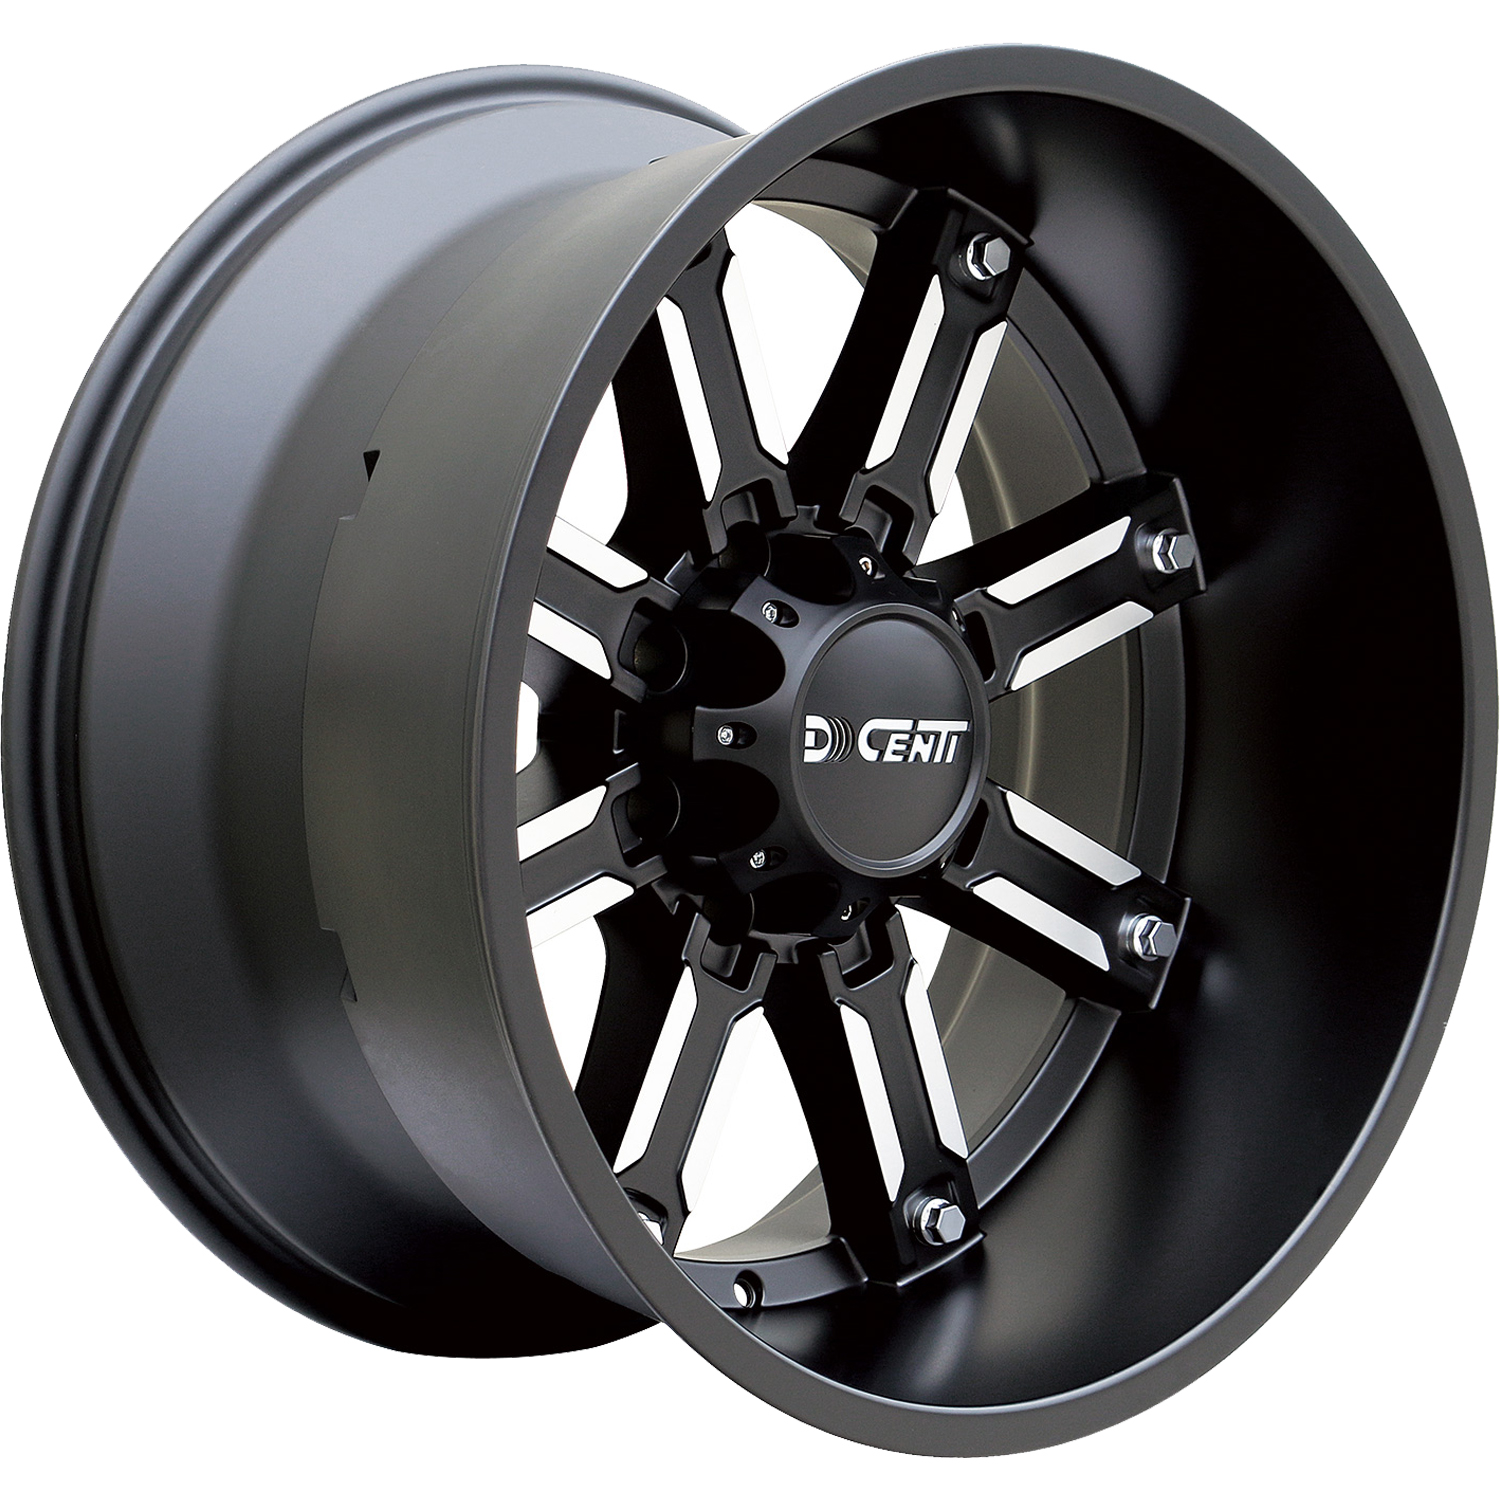 Dcenti Offroad Dw970 M 22x12 44 Custom Wheels